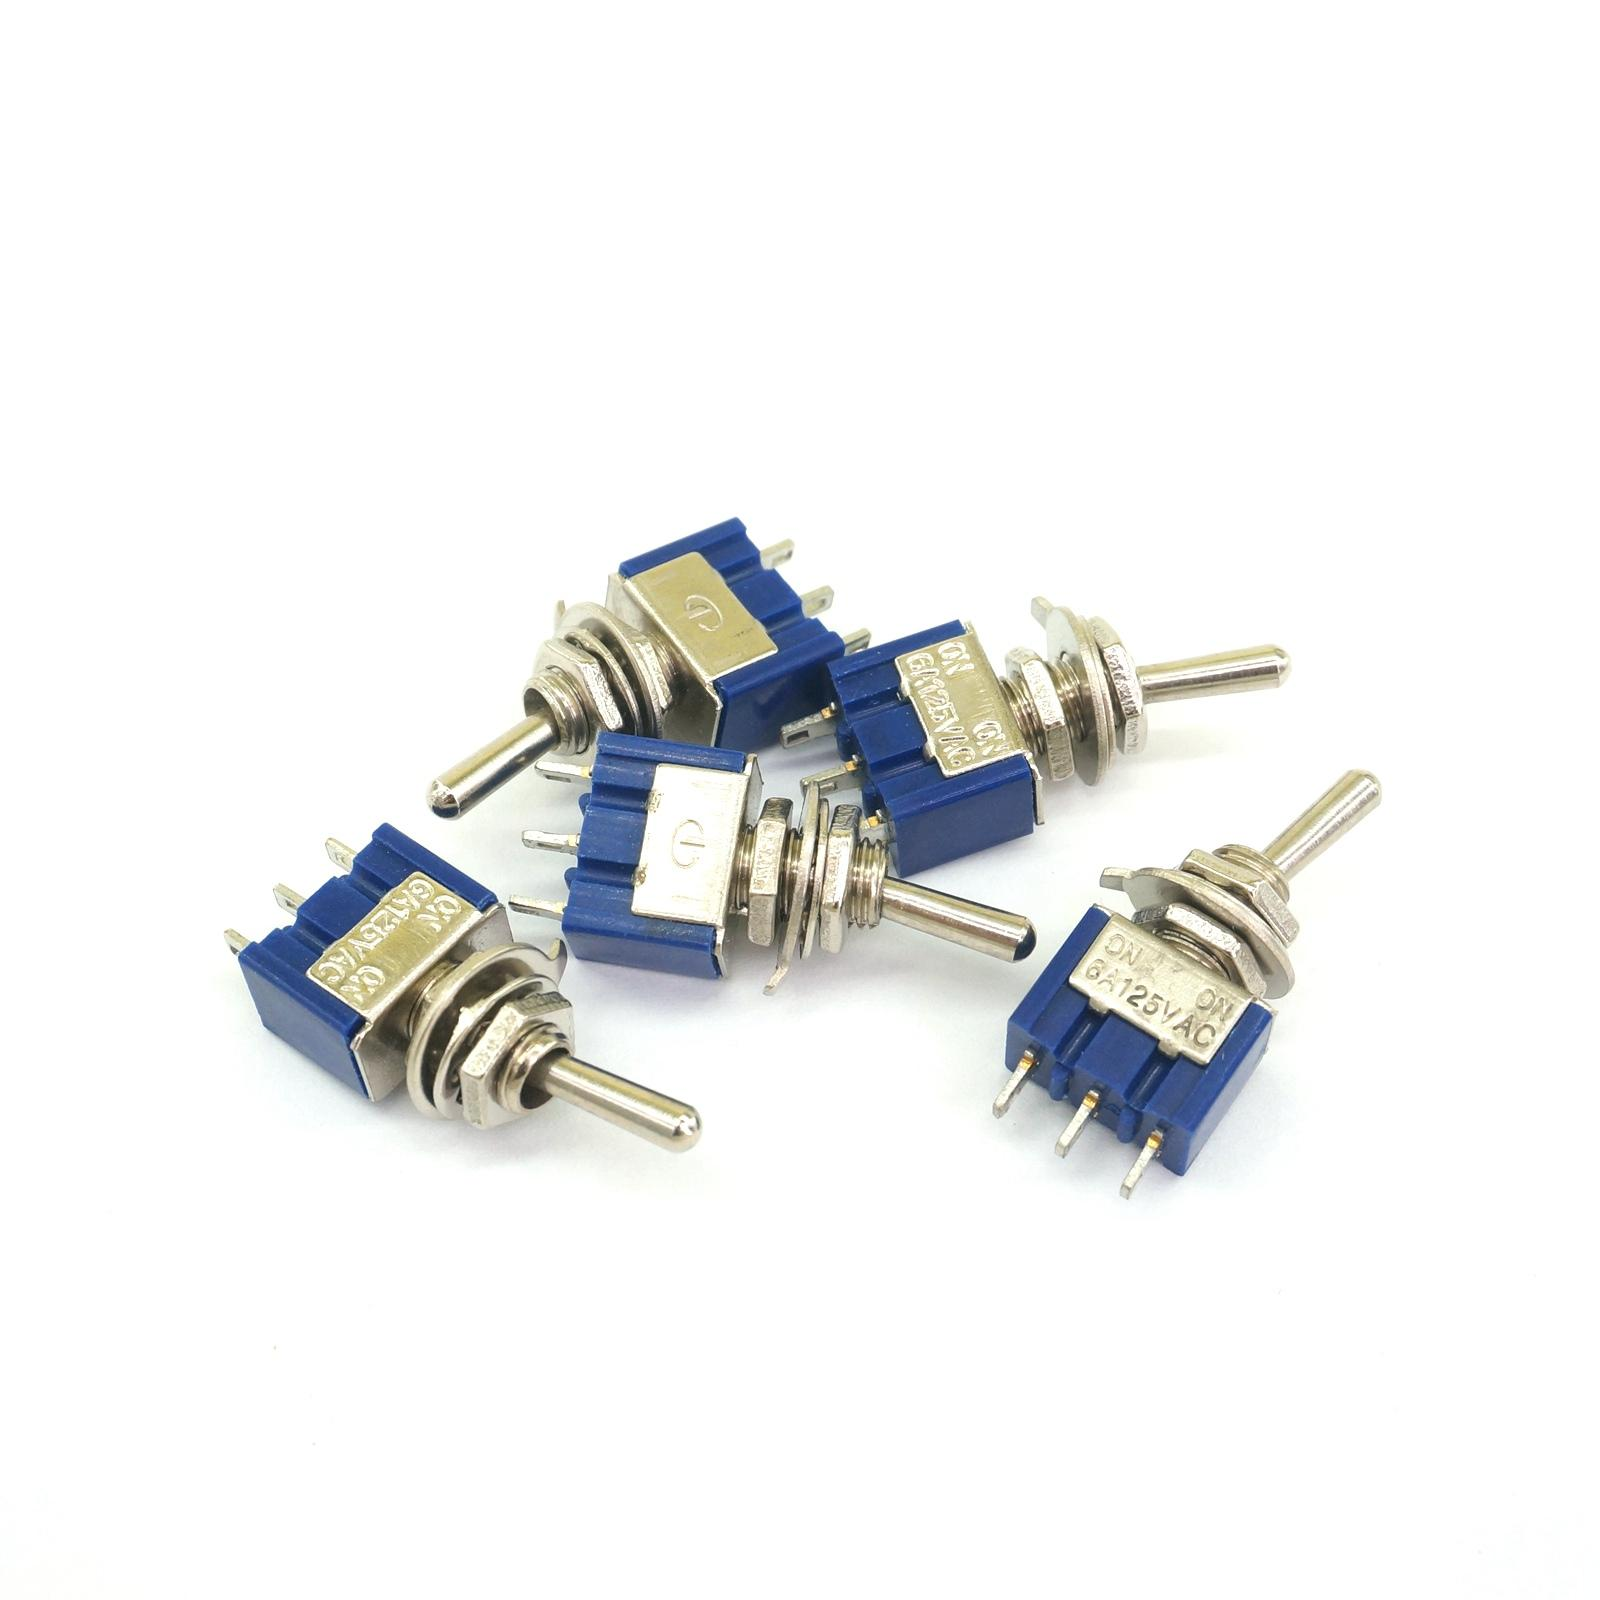 5pcs mts 102 3 pin single pole double throw on on 6a 125vac mini toggle switch [ 1600 x 1600 Pixel ]